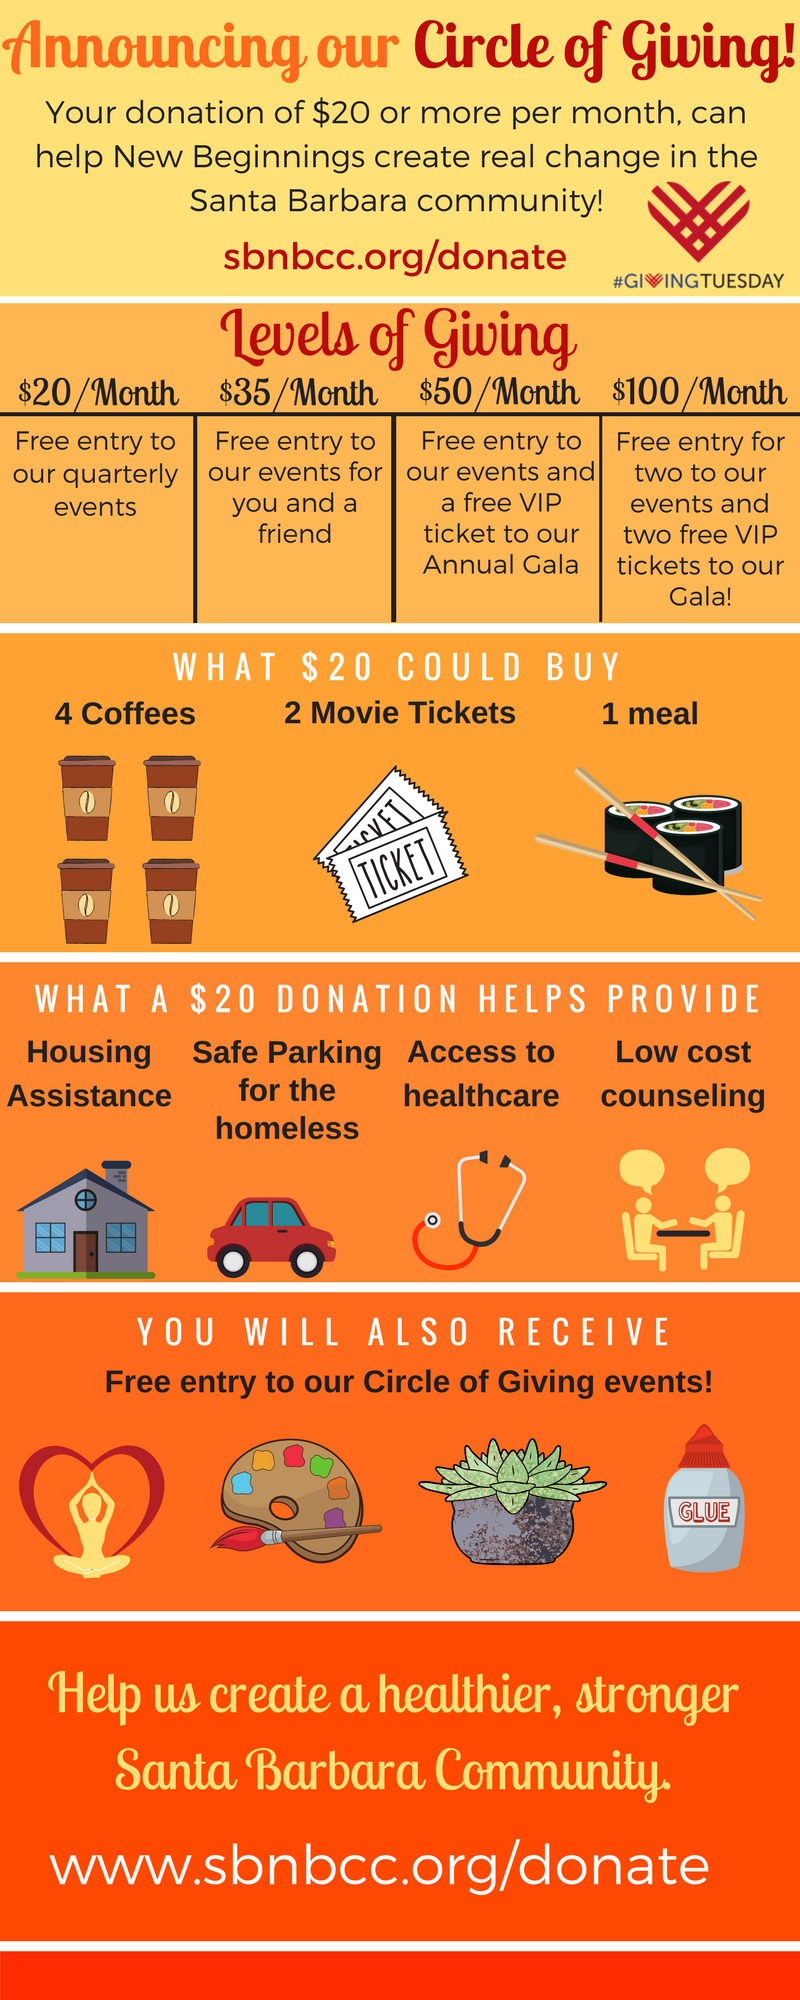 Circle of giving giving tuesday